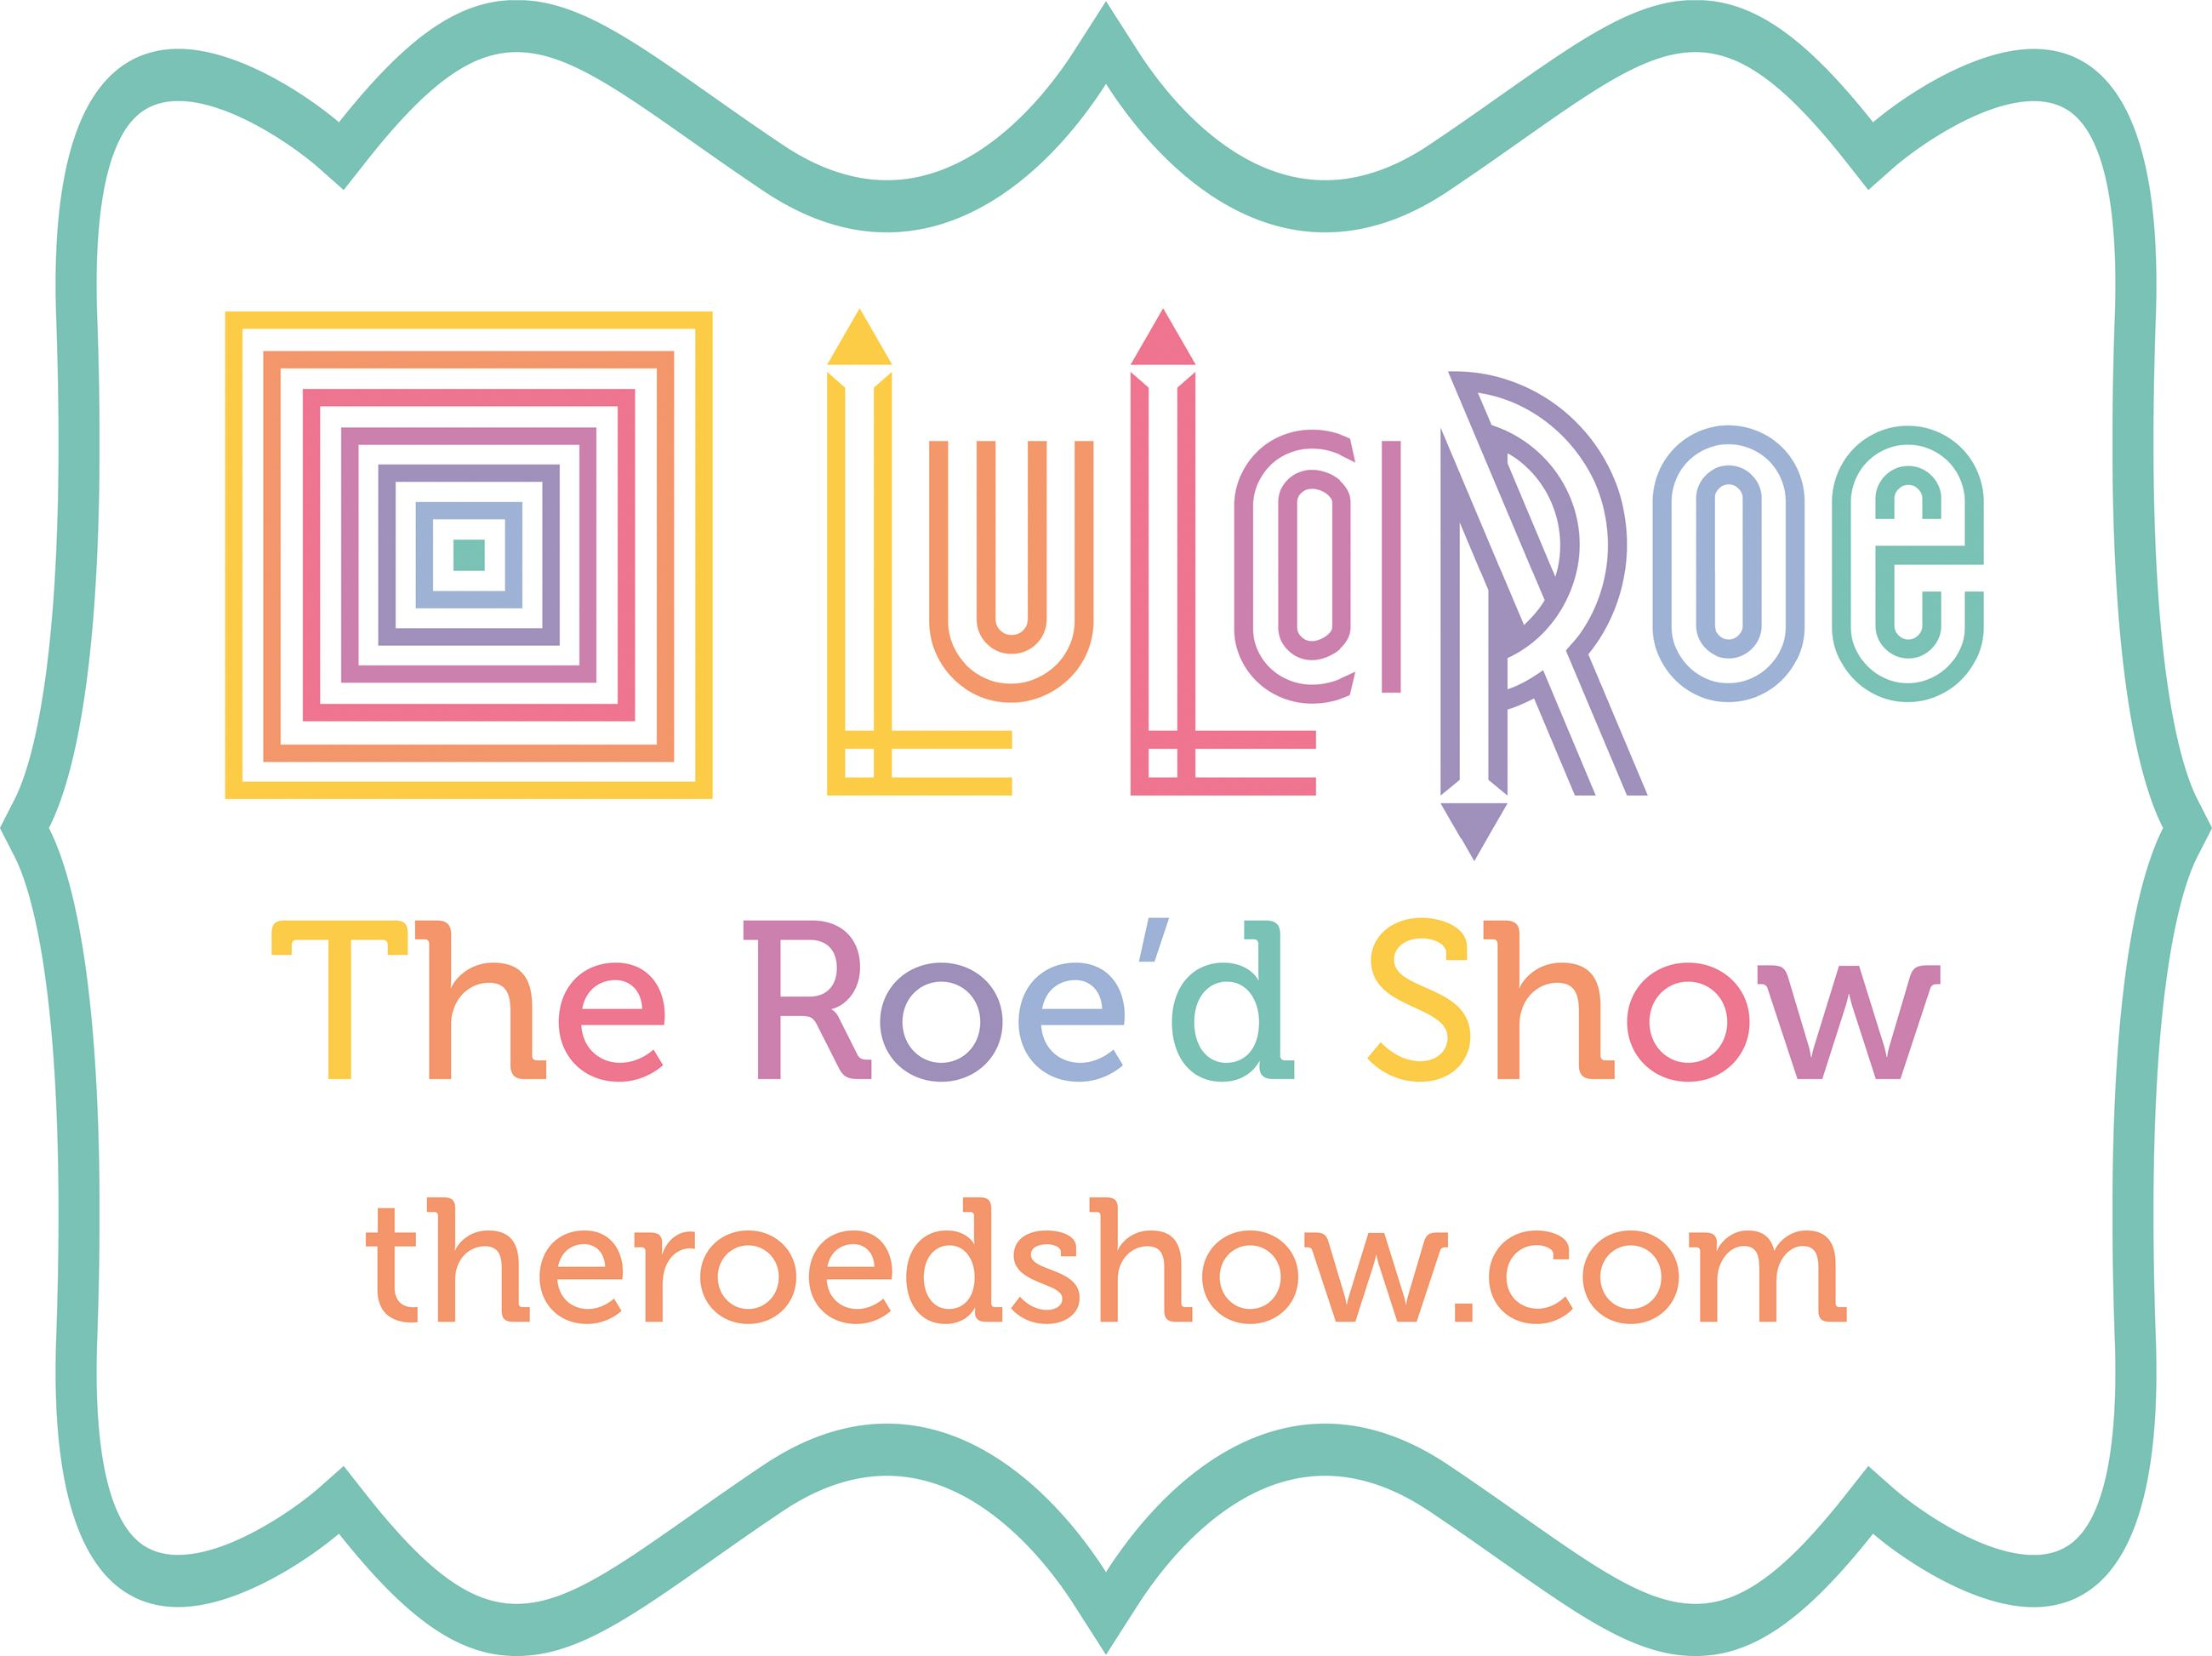 The Roed Show Logo